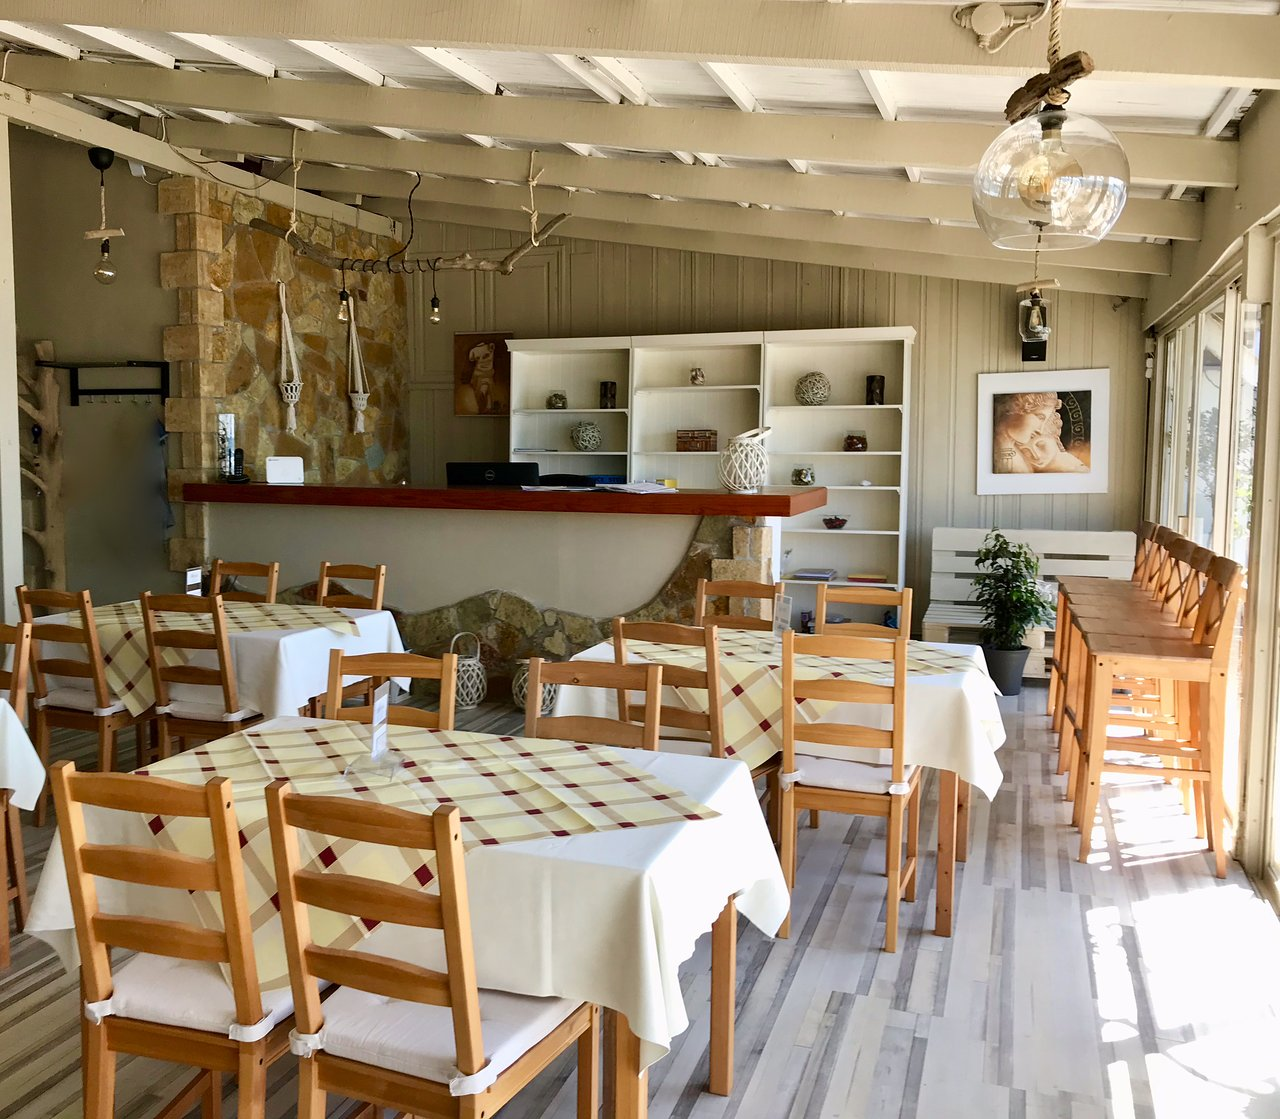 La Cucina Pylos Menu Anemos B B Reviews Price Comparison Gialova Greece